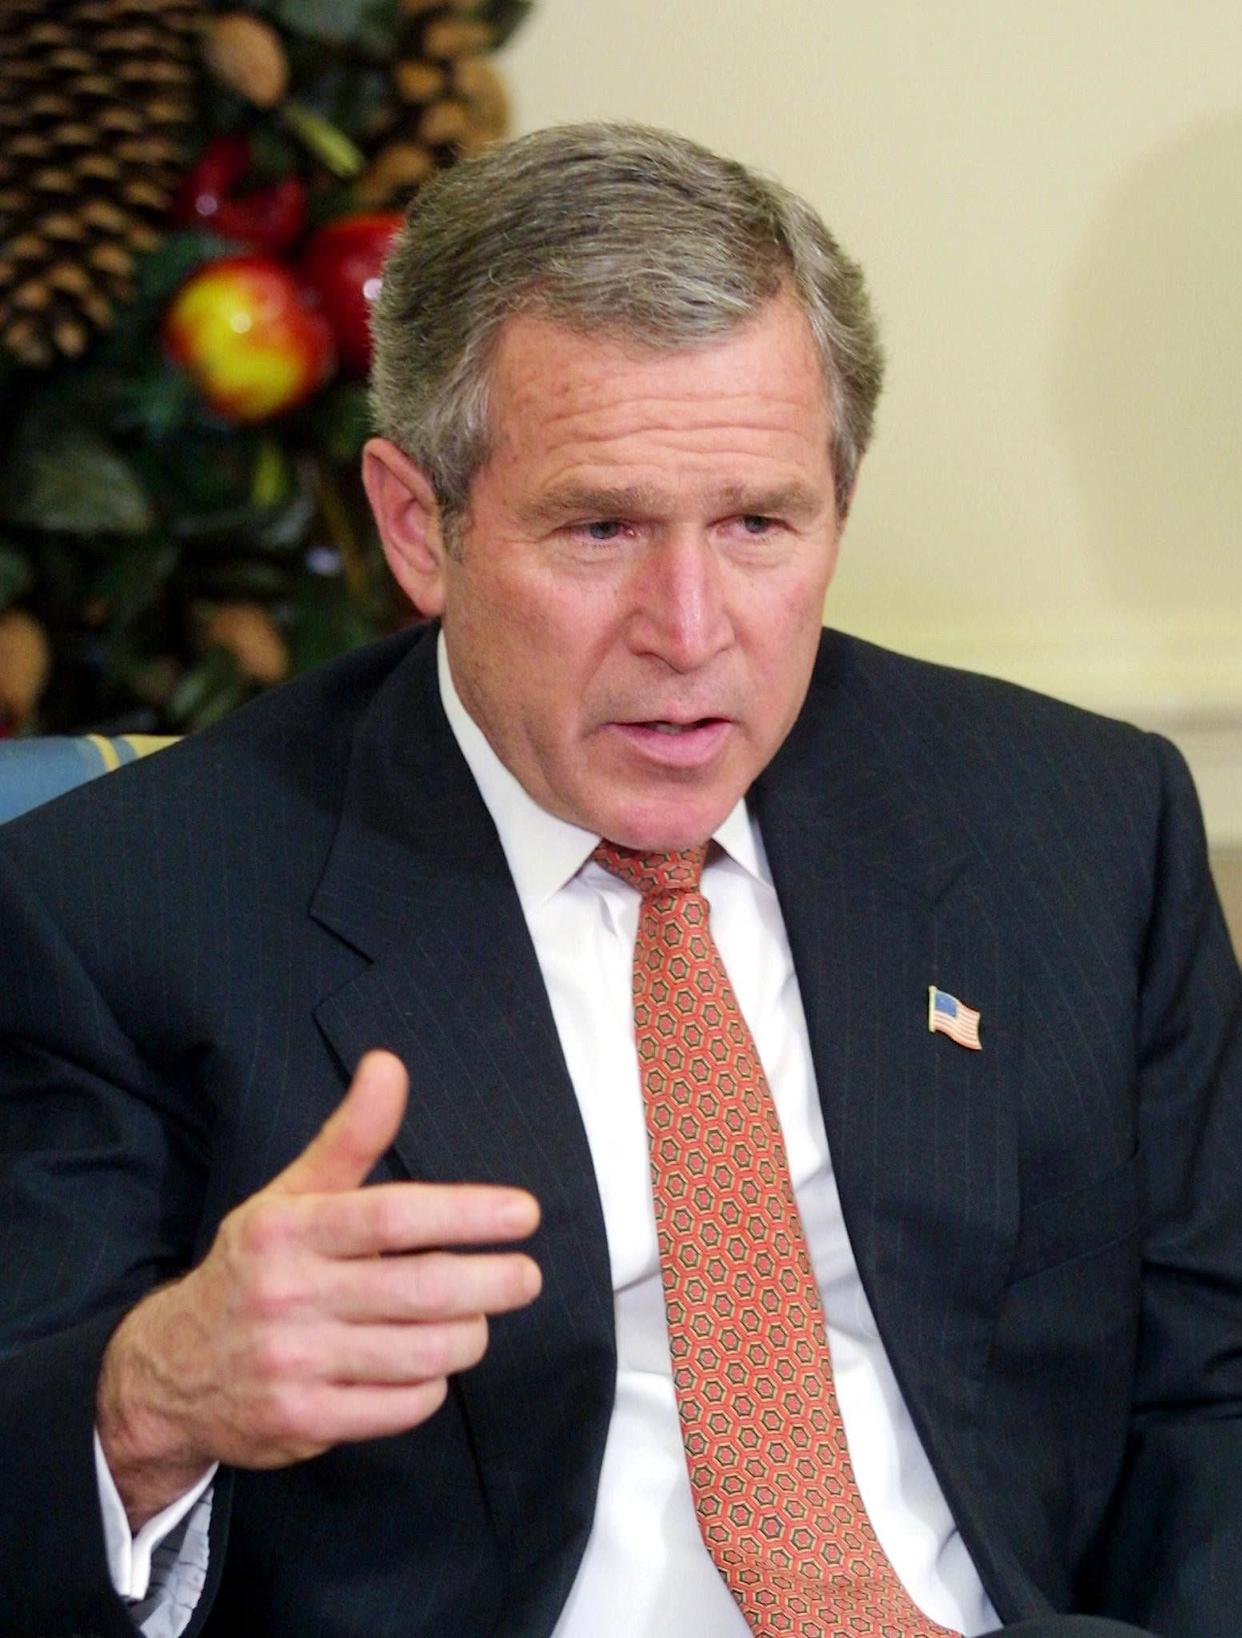 """<strong>""""It would be a mistake for the United States Senate to allow any kind of human cloning to come out of that chamber."""" </strong> -- April 10, 2002, at the White House, as Bush urged Senate passage of a broad ban on cloning. <a href=""""http://www.huffingtonpost.com/2009/01/03/bushisms-over-the-years_n_154969.html"""" rel=""""nofollow noopener"""" target=""""_blank"""" data-ylk=""""slk:Source: The Associated Press"""" class=""""link rapid-noclick-resp"""">Source: The Associated Press</a> (MANNY CENETA/AFP/Getty Images)"""